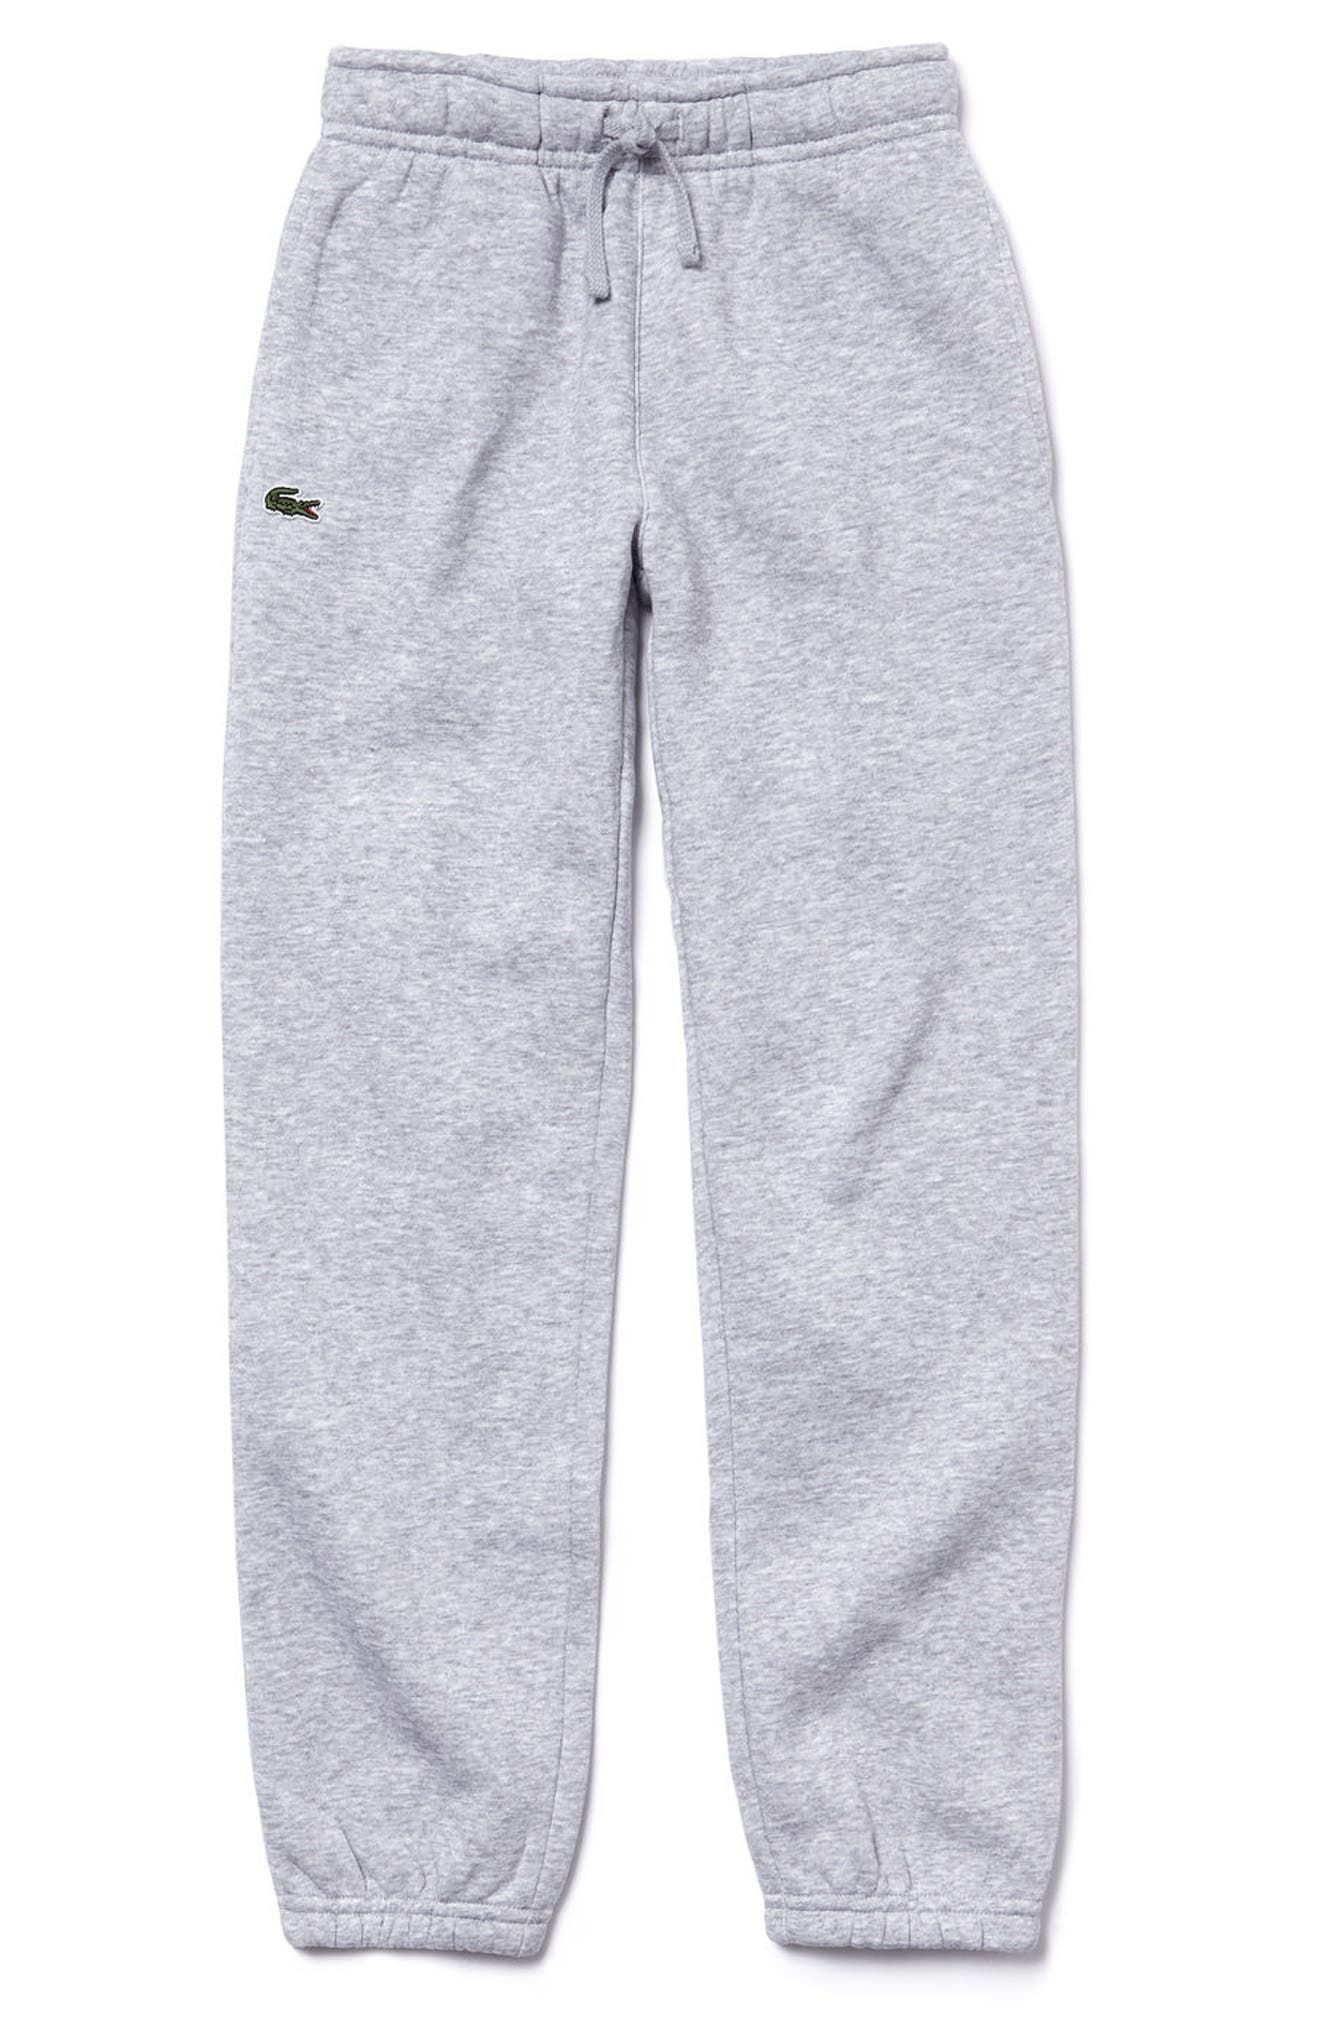 Sport Sweatpants,                         Main,                         color, Silver Grey Chine